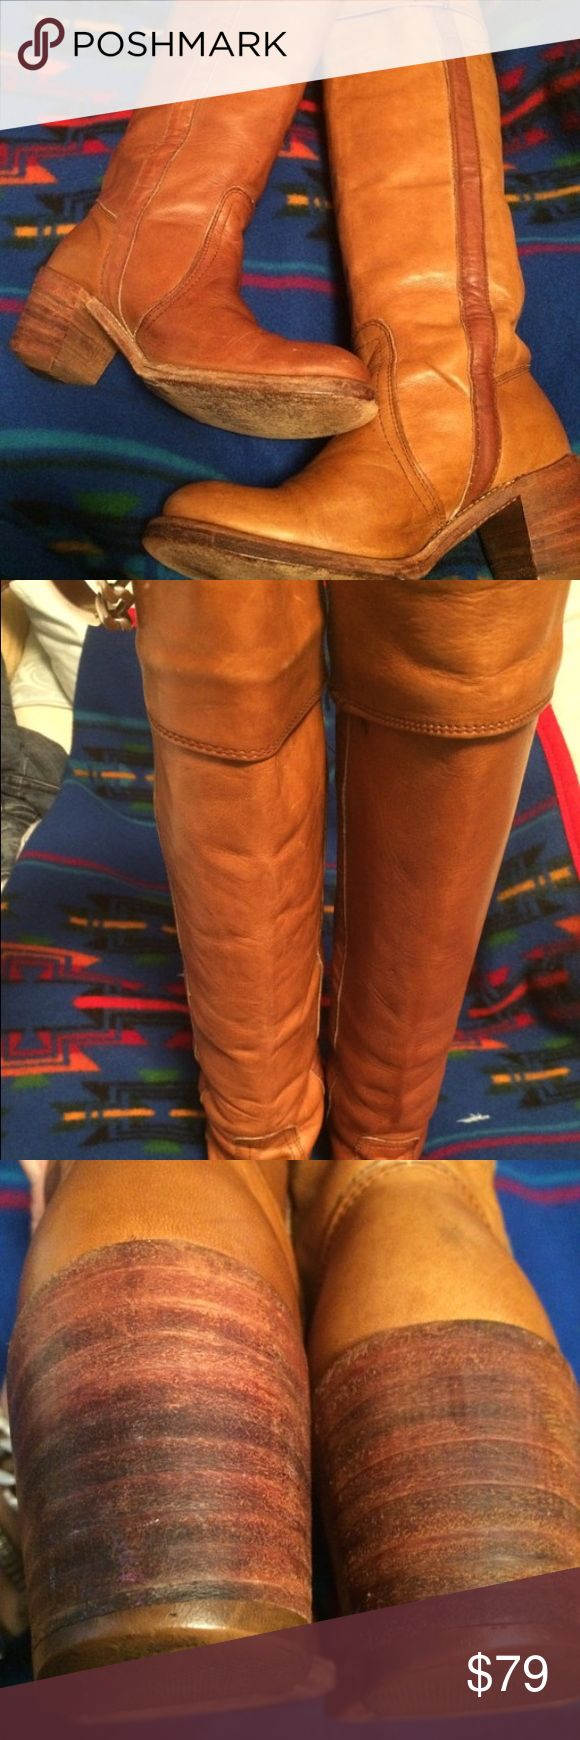 Womans vintage sz 6 knee high Frye boot Used look at pictures ,plenty of life left ,women's size 6B knee-high vintage fry boots Frye Shoes Heeled Boots